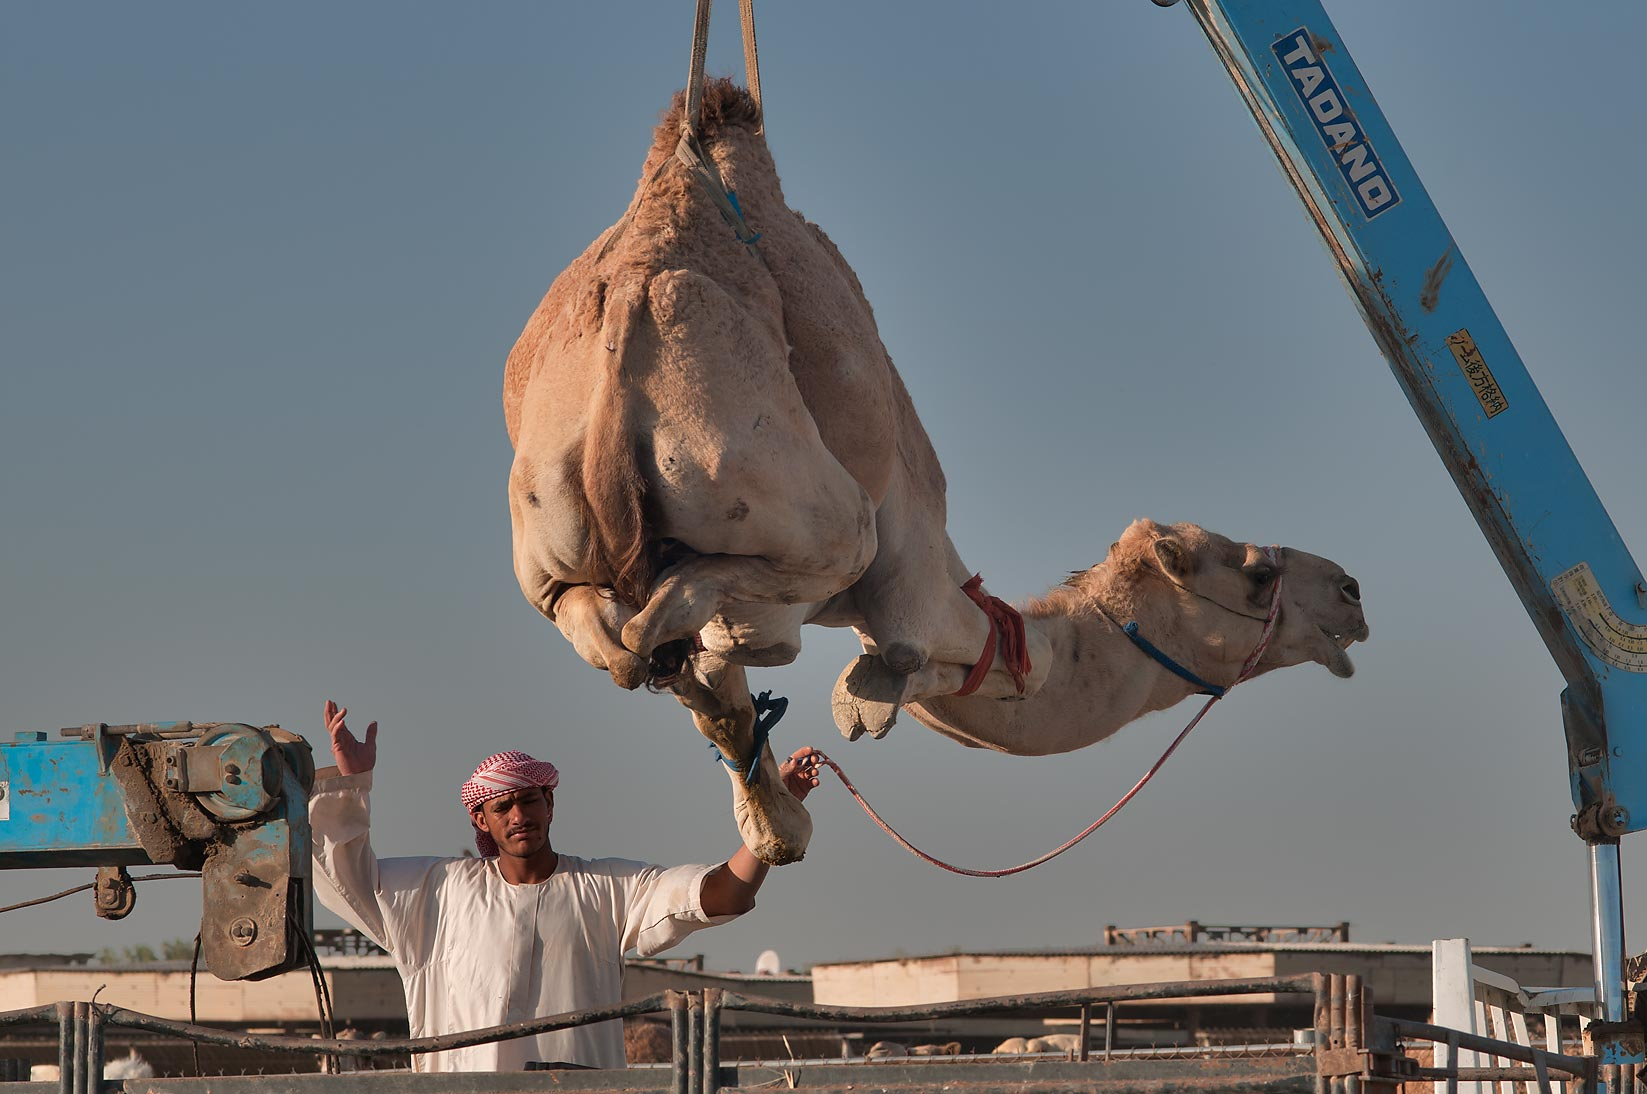 Camel suspended by crane over a truck in Camel...Wholesale Markets area. Doha, Qatar